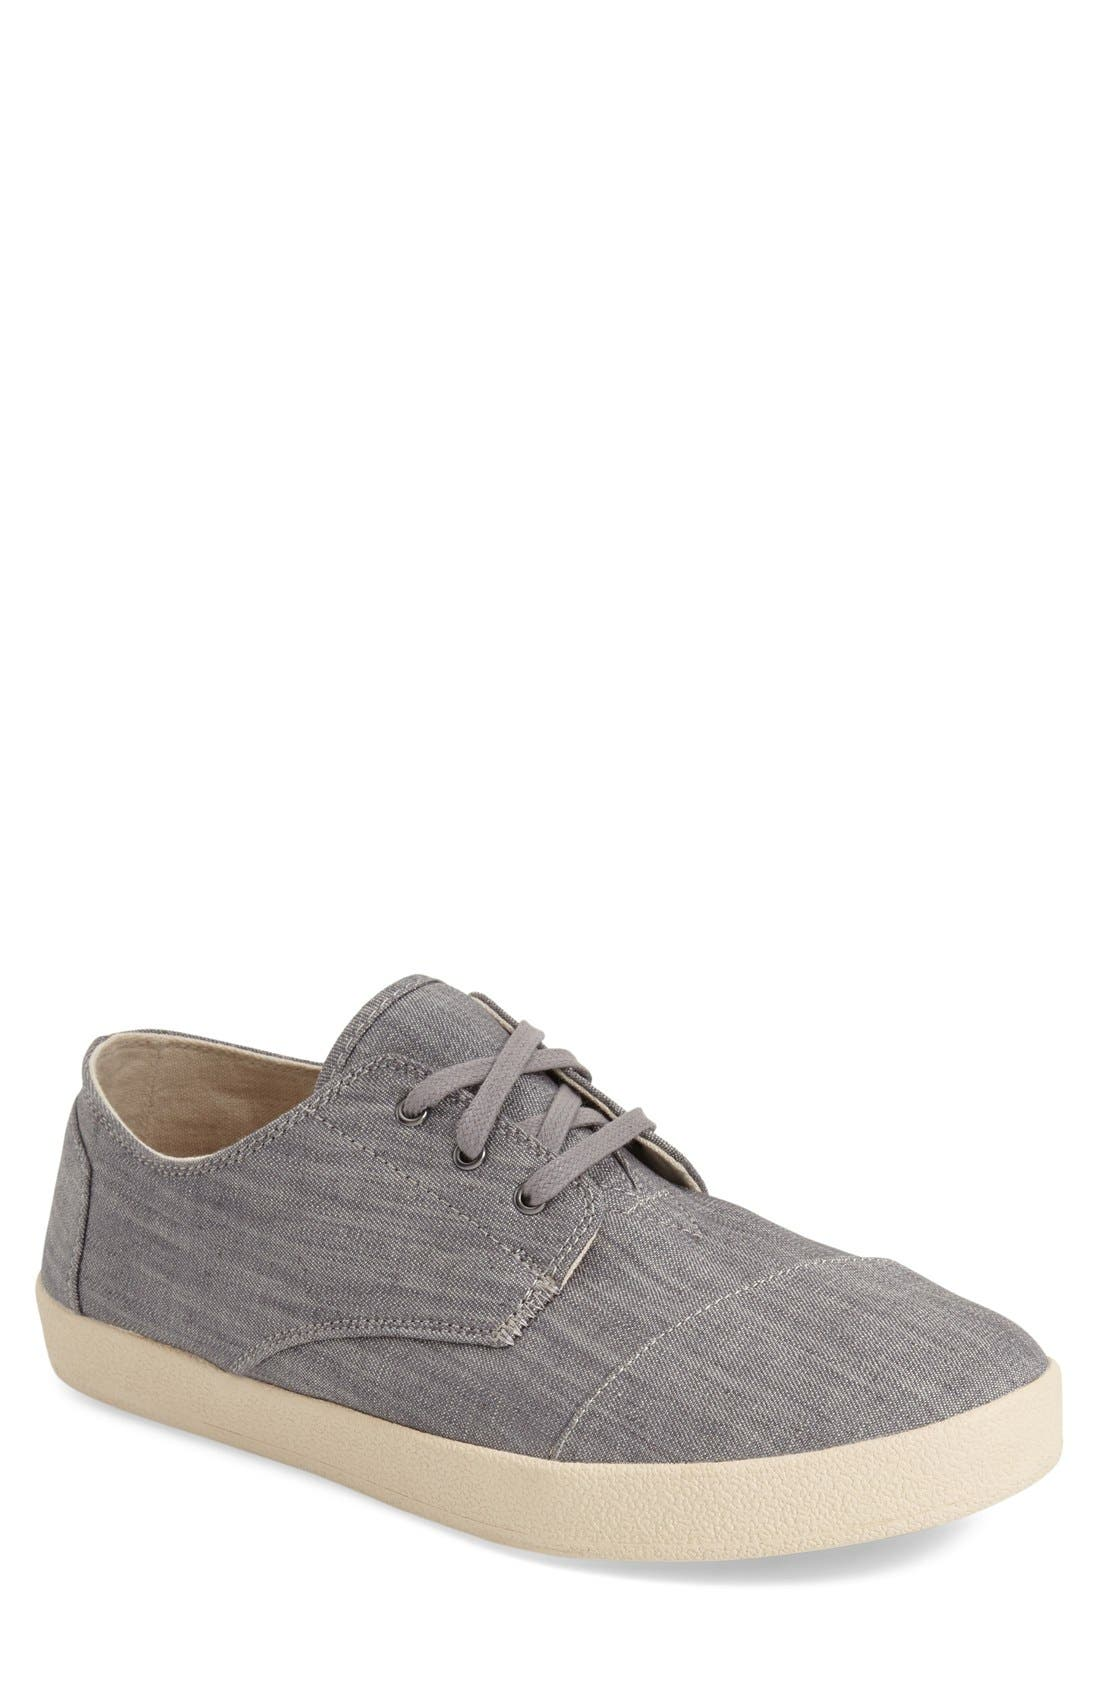 'Paseo' Sneaker,                         Main,                         color, 020